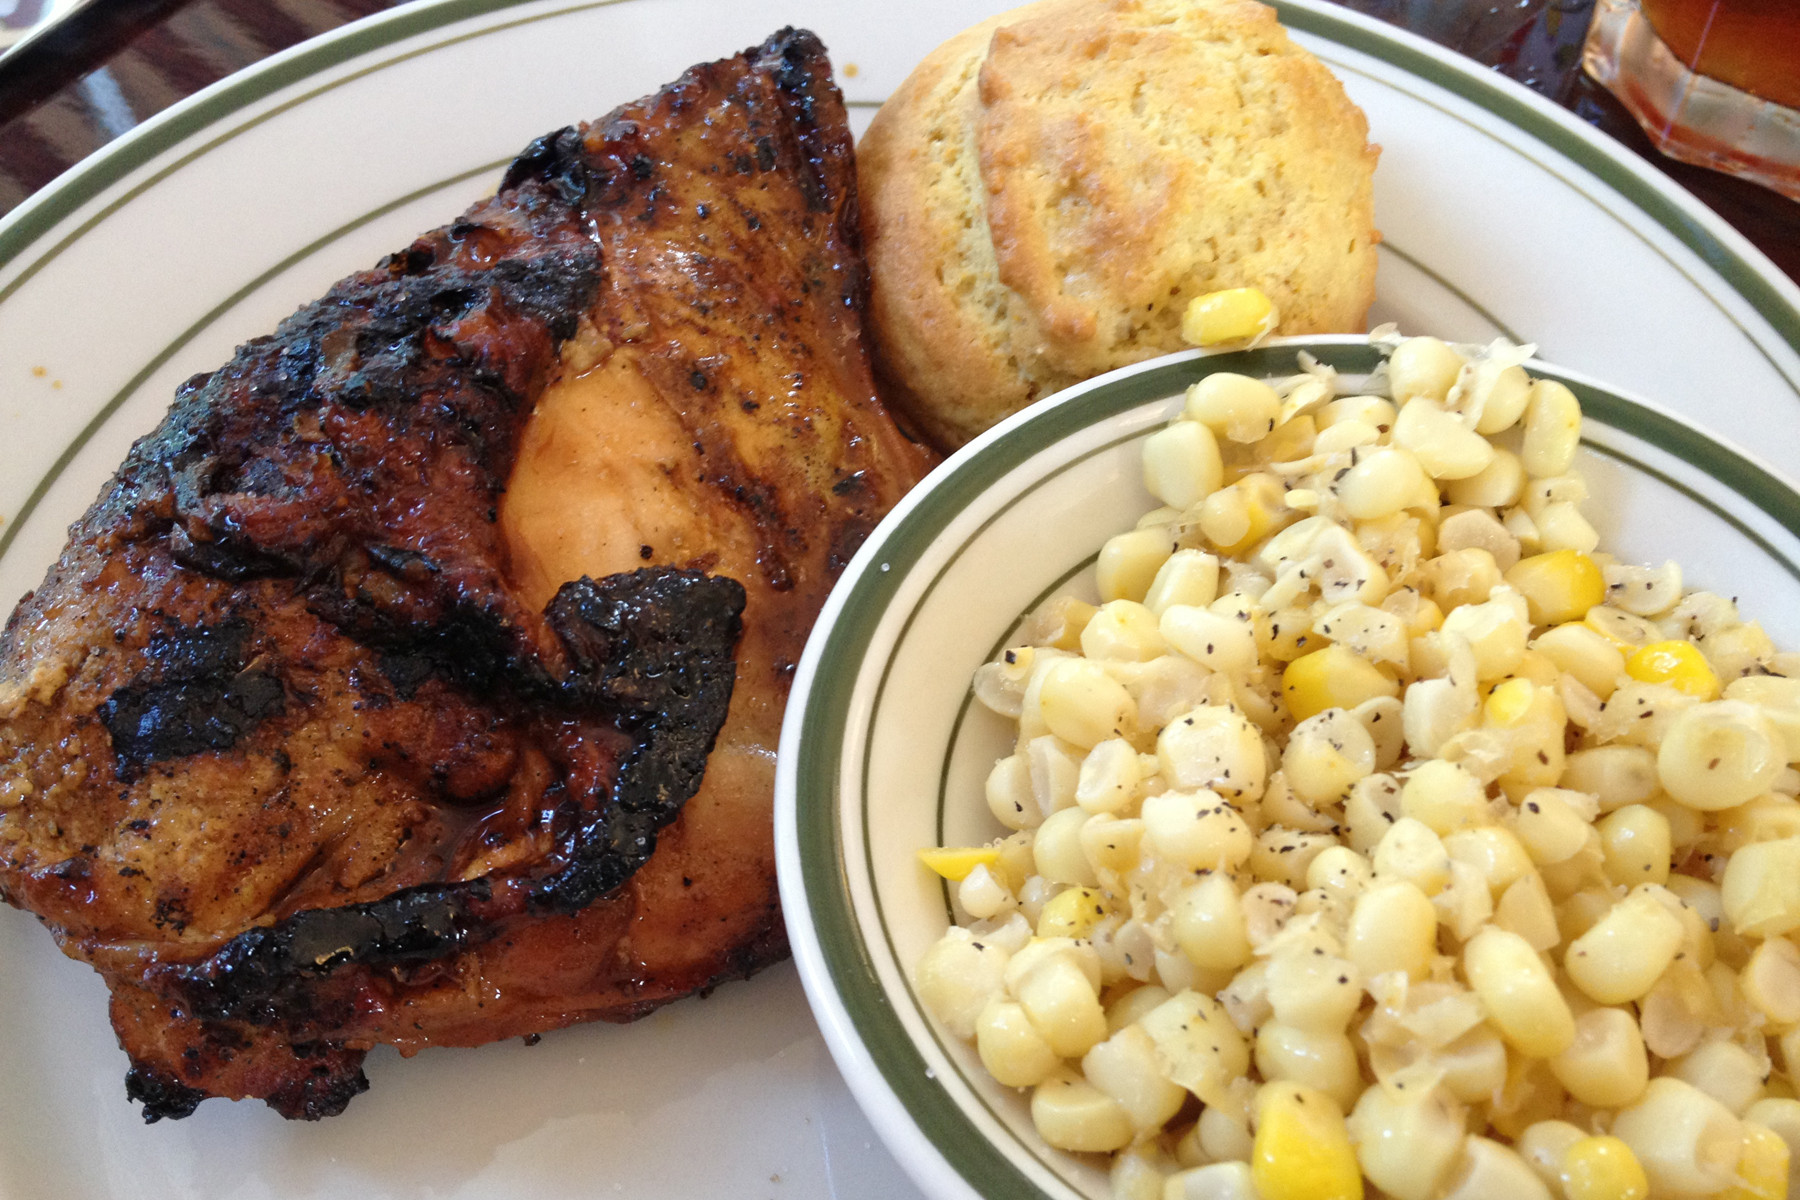 The bone-in barbecue chicken breast with cornbread and knife-cut corn is divine.